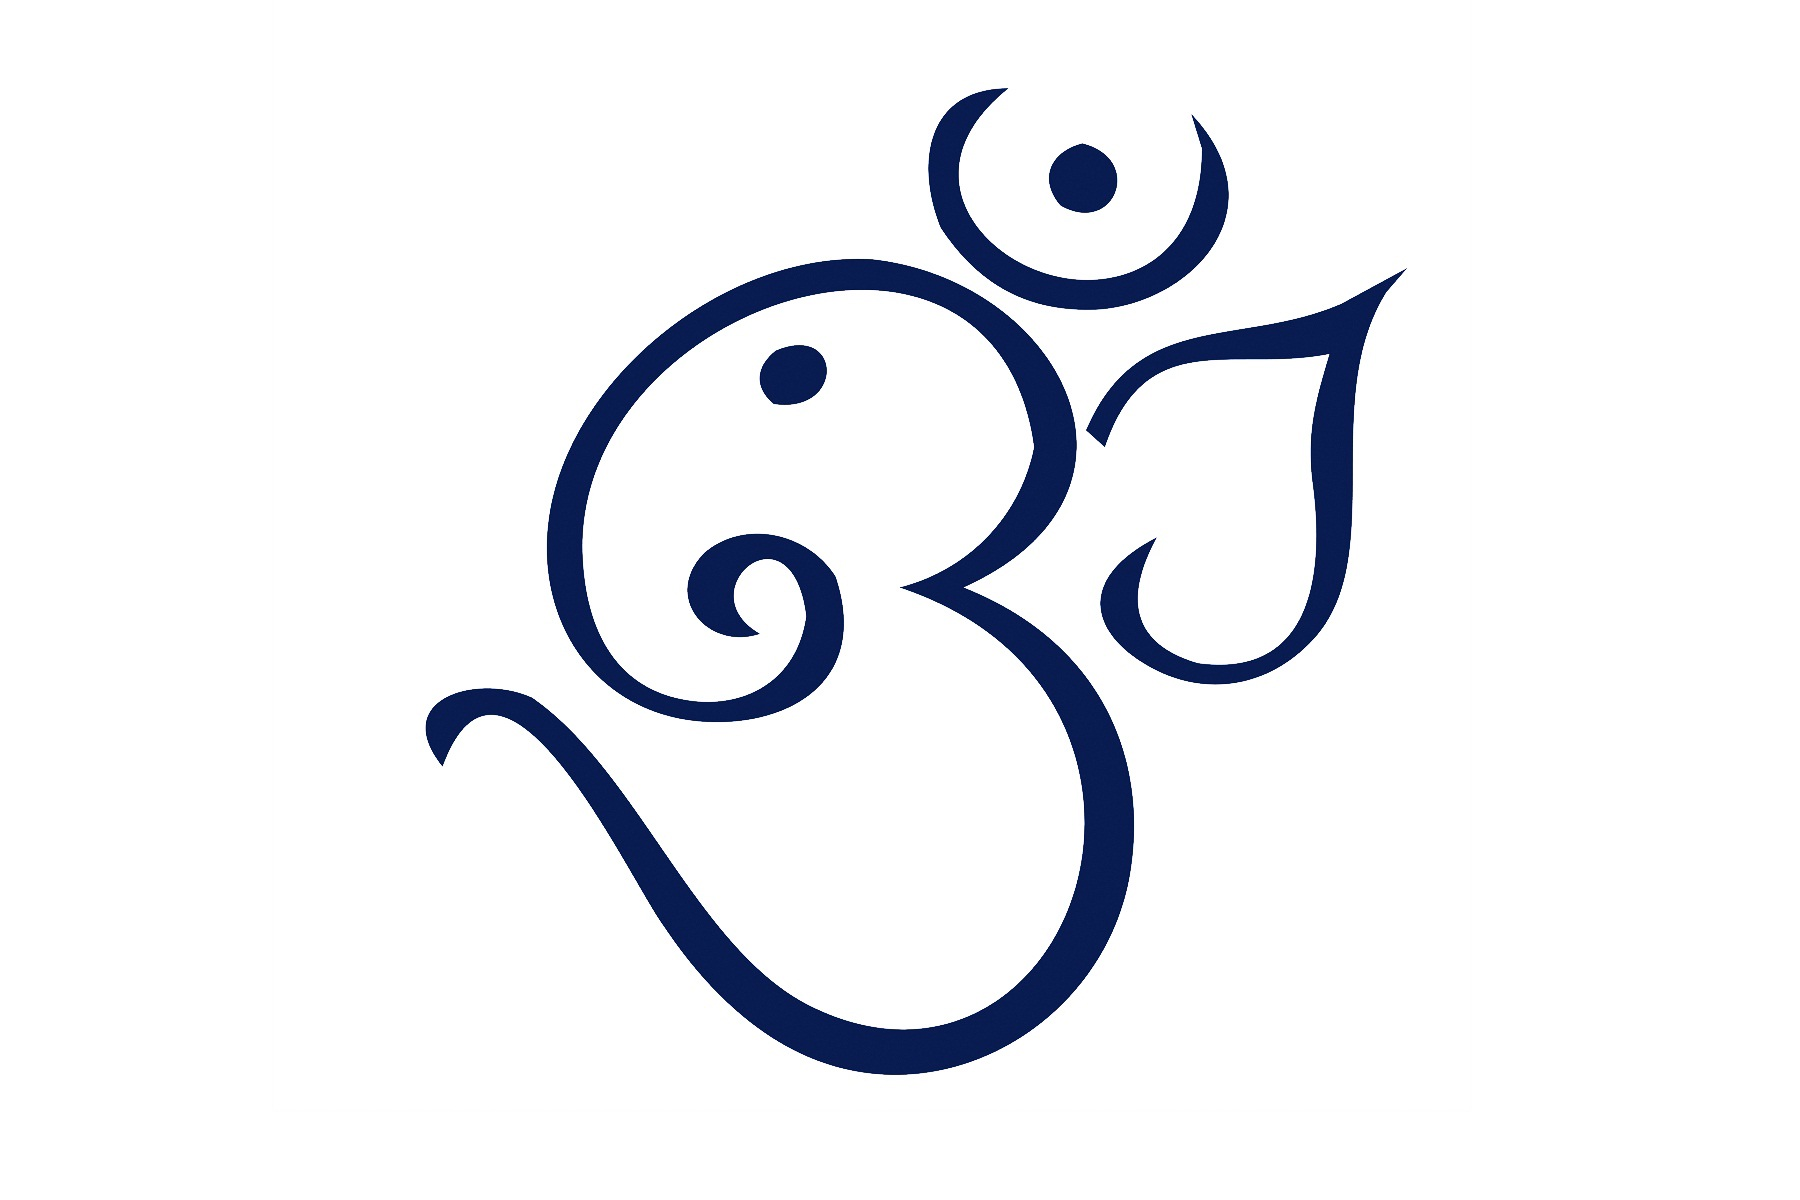 Om Symbol Meaning Tattoo 10 Top Best Om Tattoo Designs With Meaning